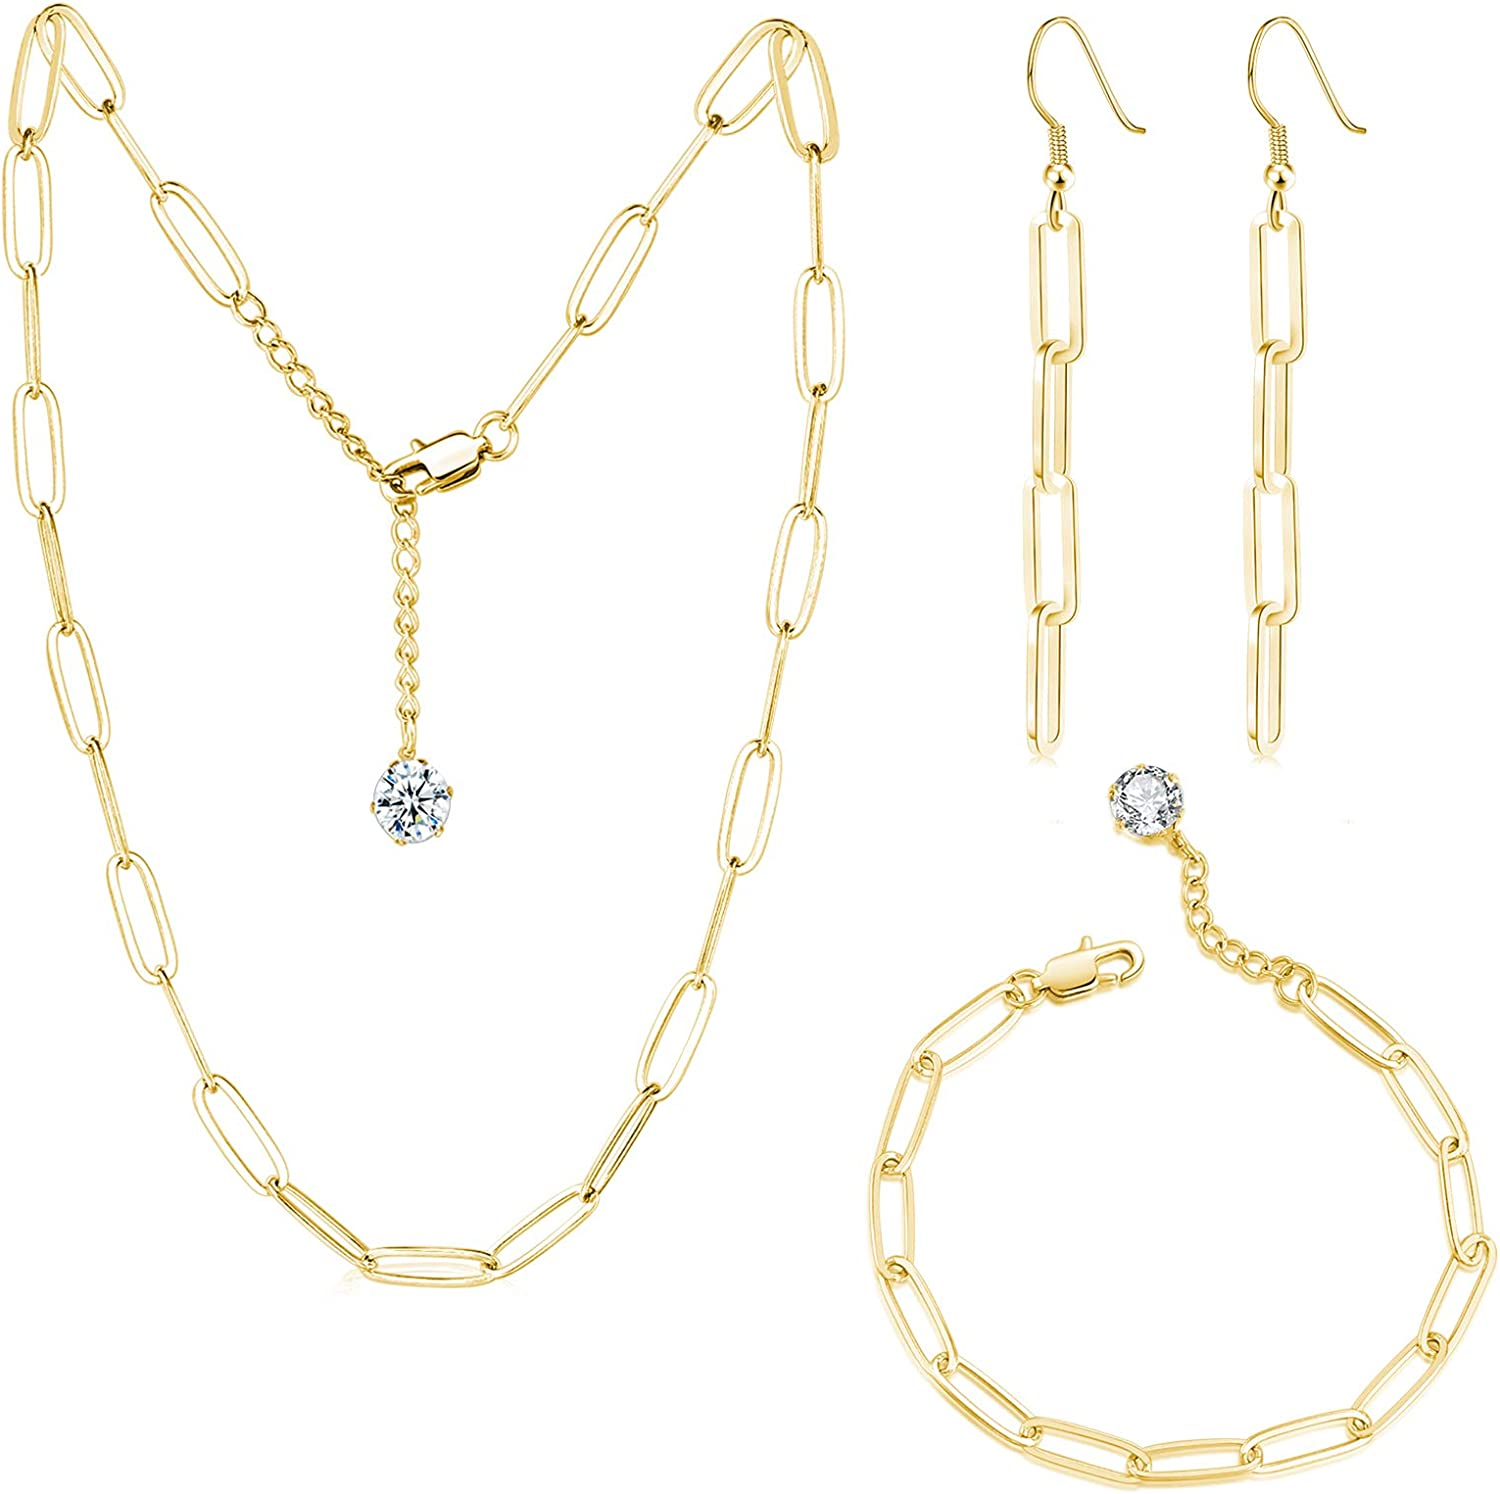 GEMOSA Paperclip Chain Necklace for Women PVD Gold Plating Stainless Steel Diamond 5A+ Cubic Zirconia CZ Thin Link Adjustable Choker and Bracelet Earrings Set Handmade Jewelry Girls Gift